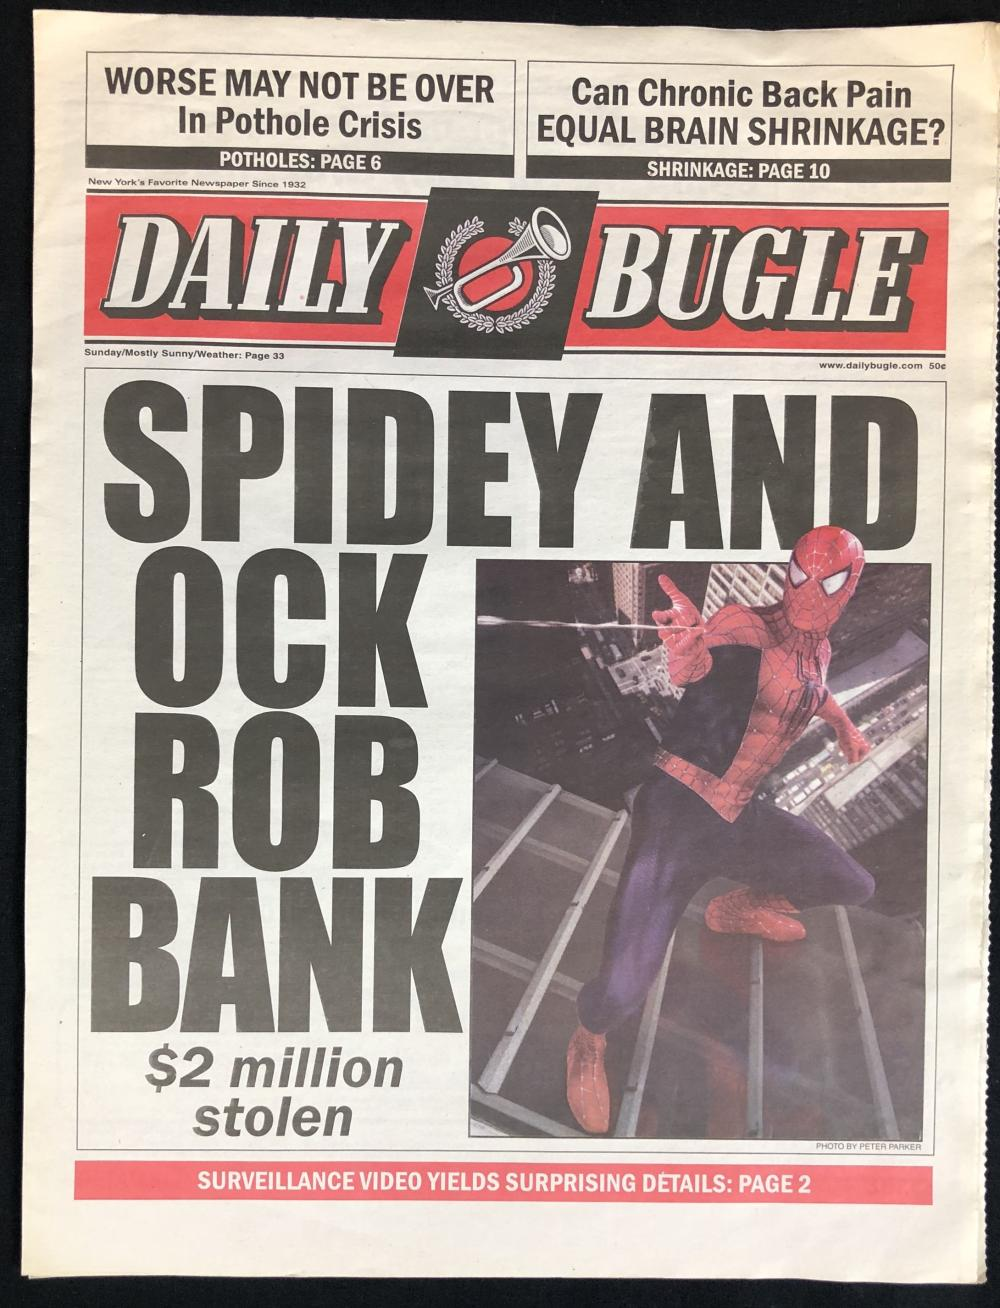 Lot 130: Spider-Man 2 (2004) - Daily Bugle Newspaper Prop - Spidey And Ock Rob Bank